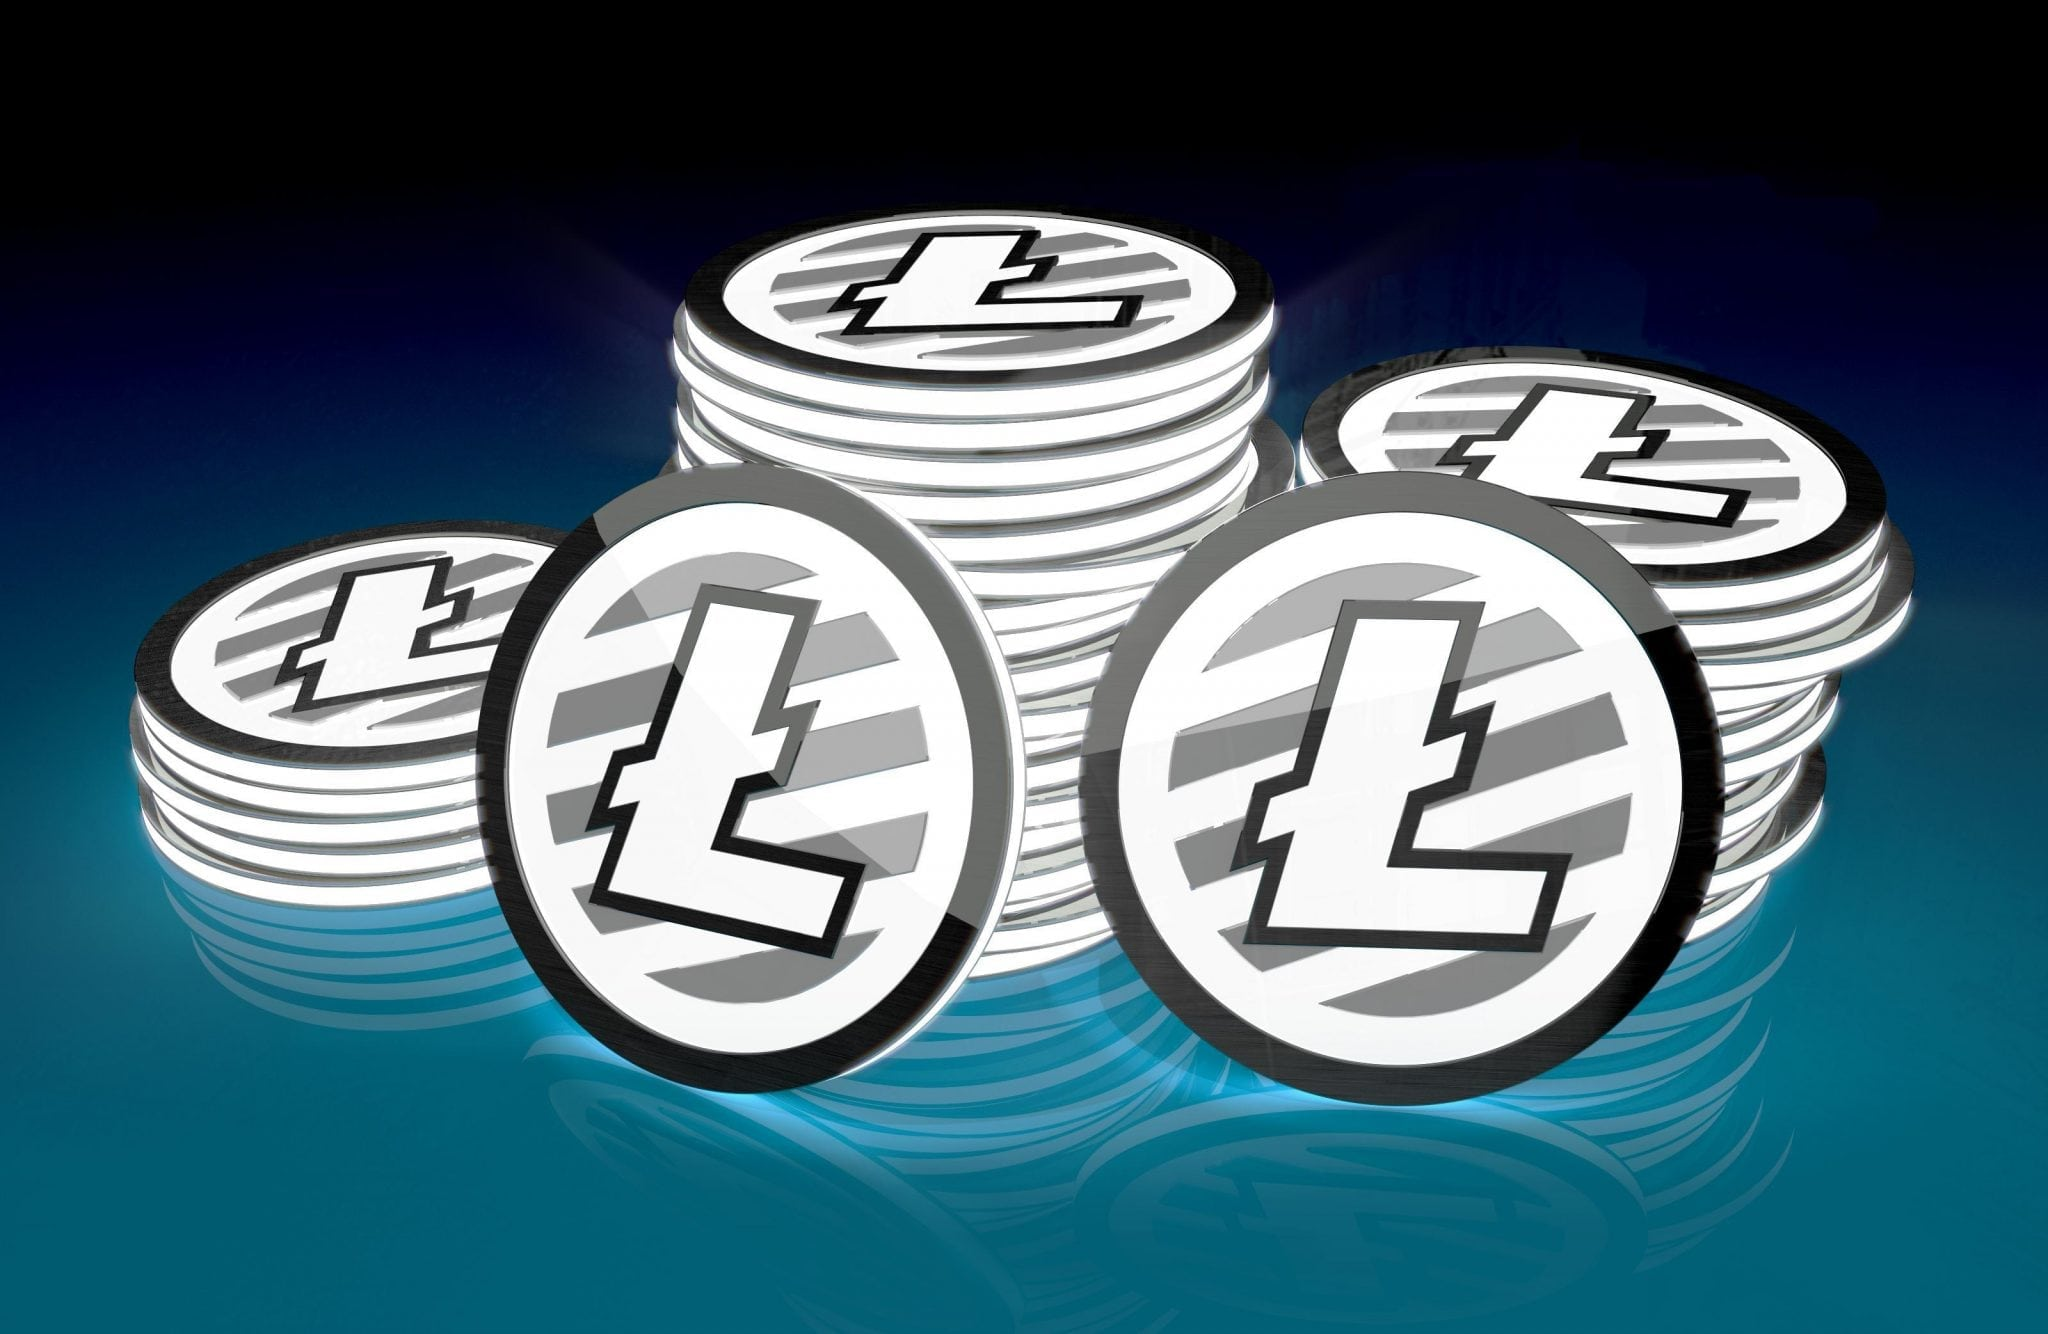 litecoin lts launched new litecoin core - Developments That Will Shape Litecoin (LTC)'s Fortunes In 2019